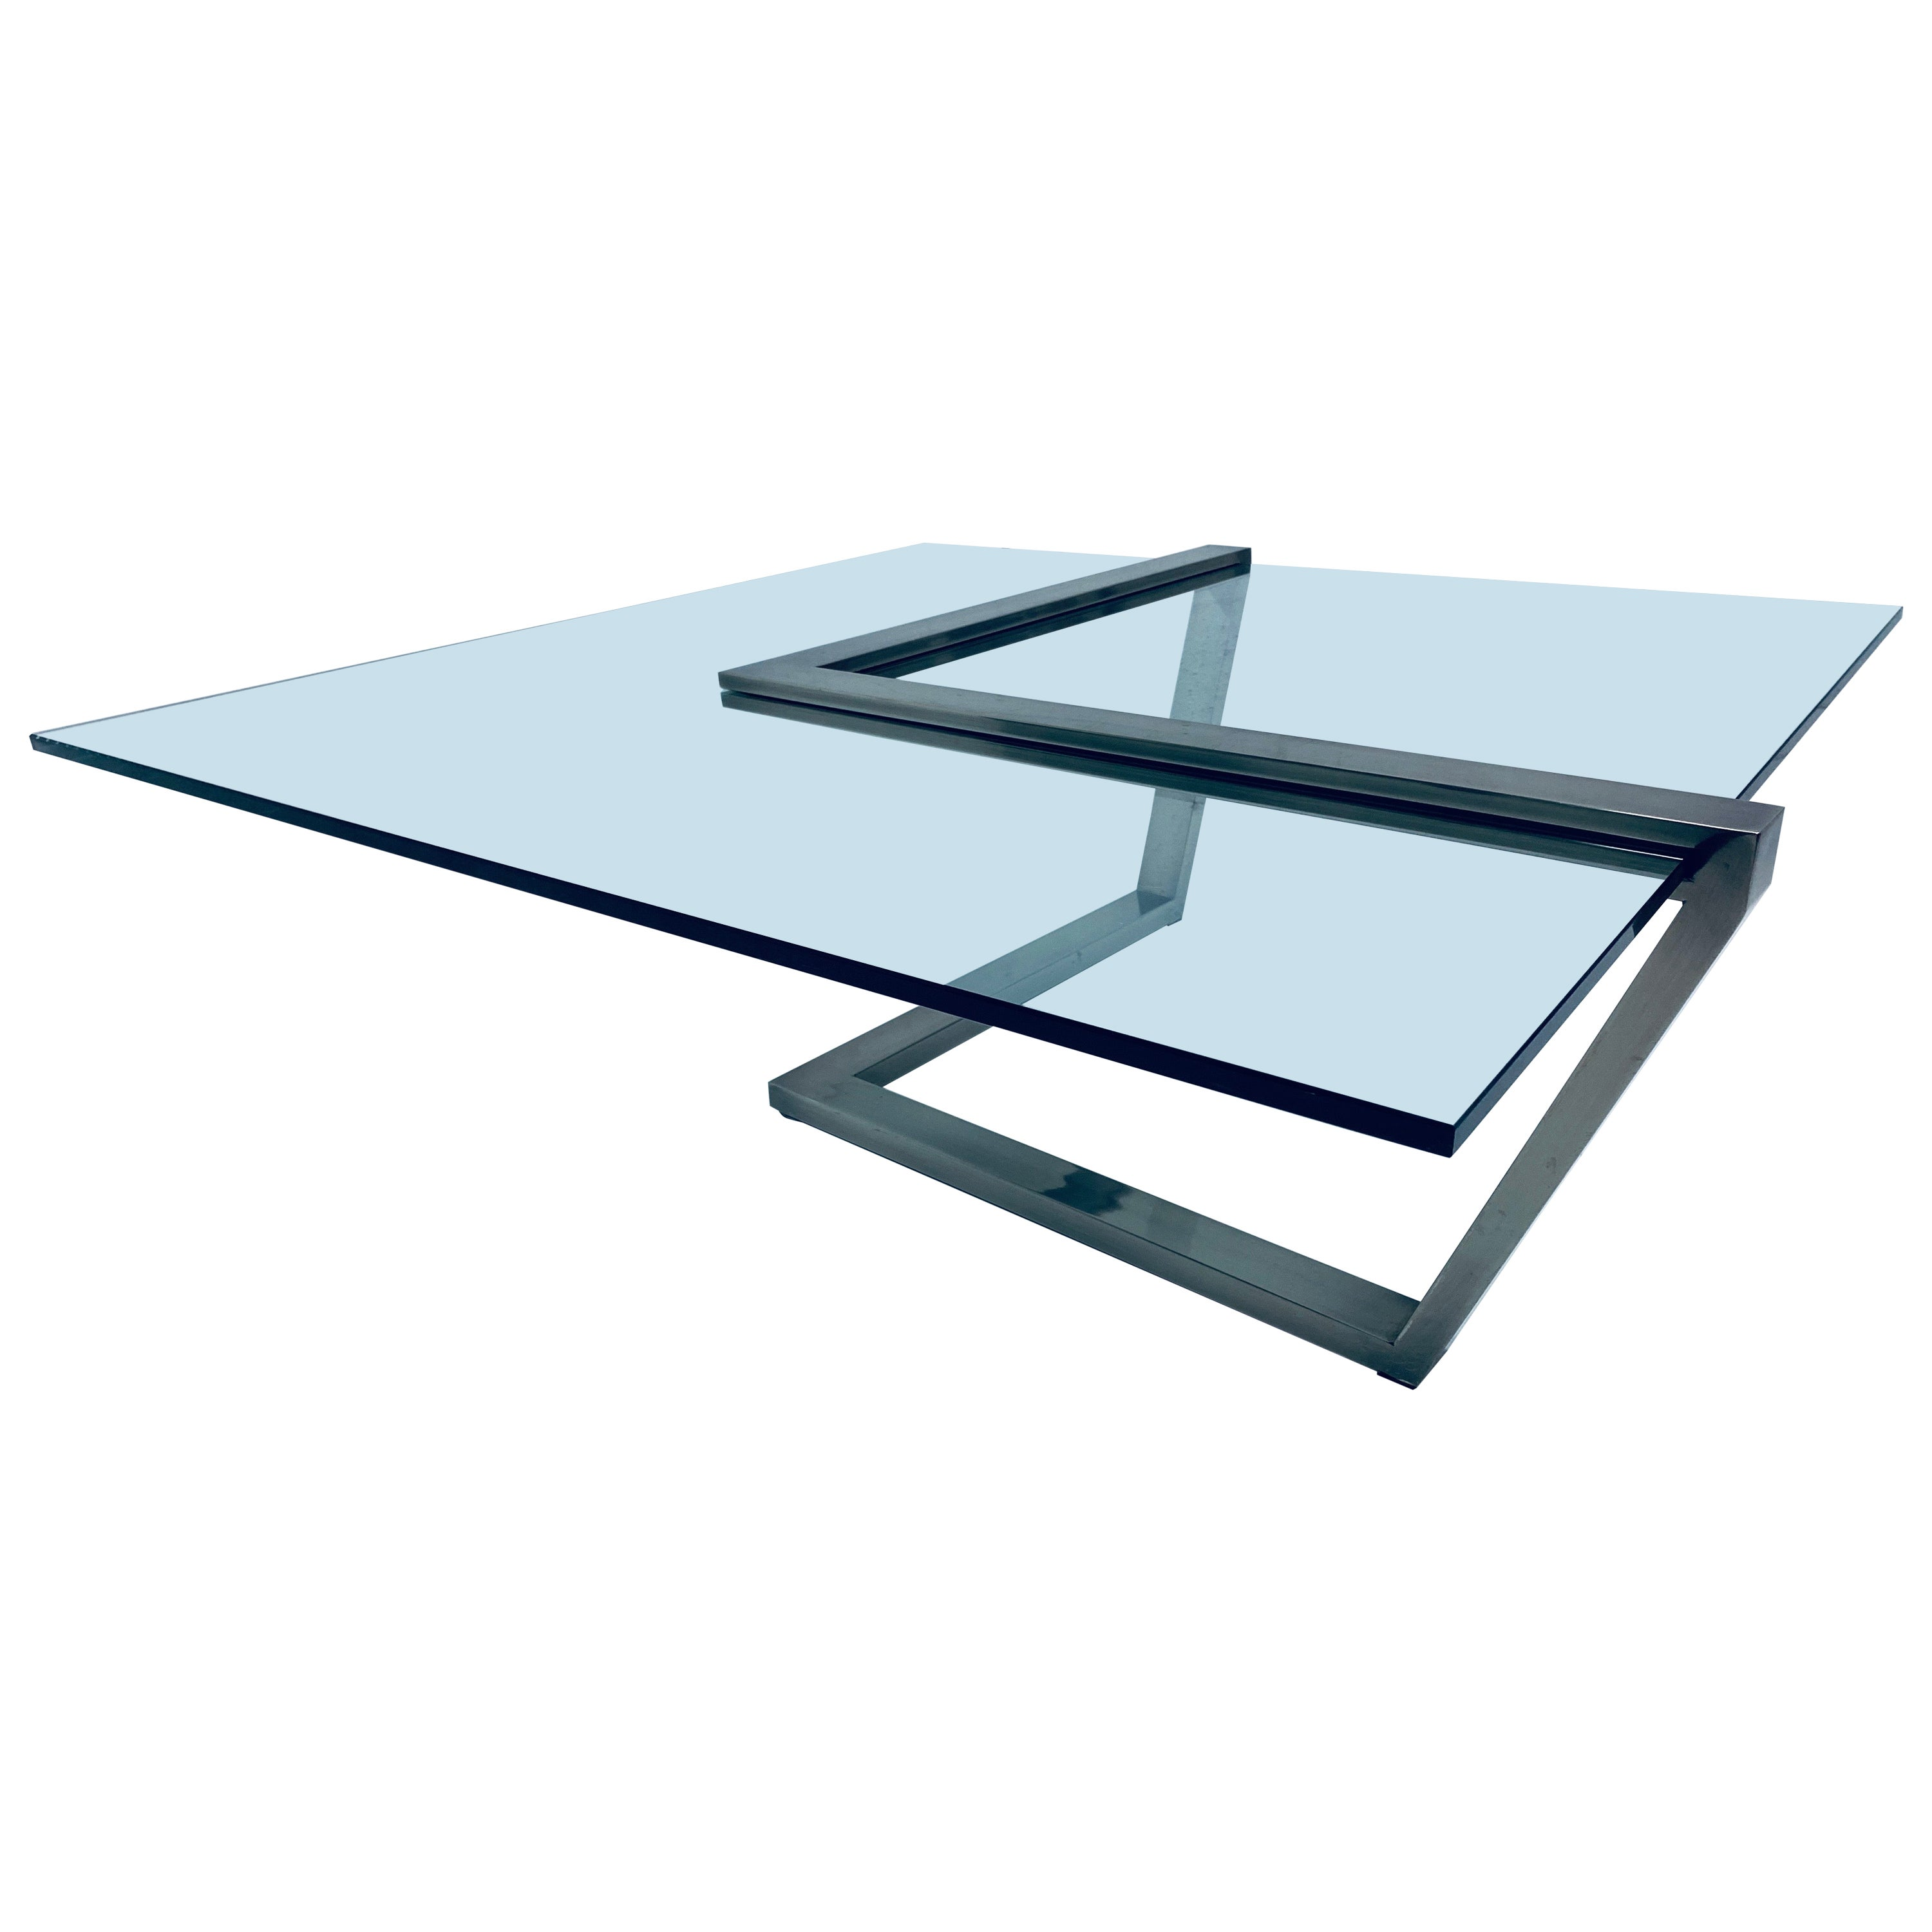 Design Institute of America DIA Glass and Brushed Chrome Coffee Table